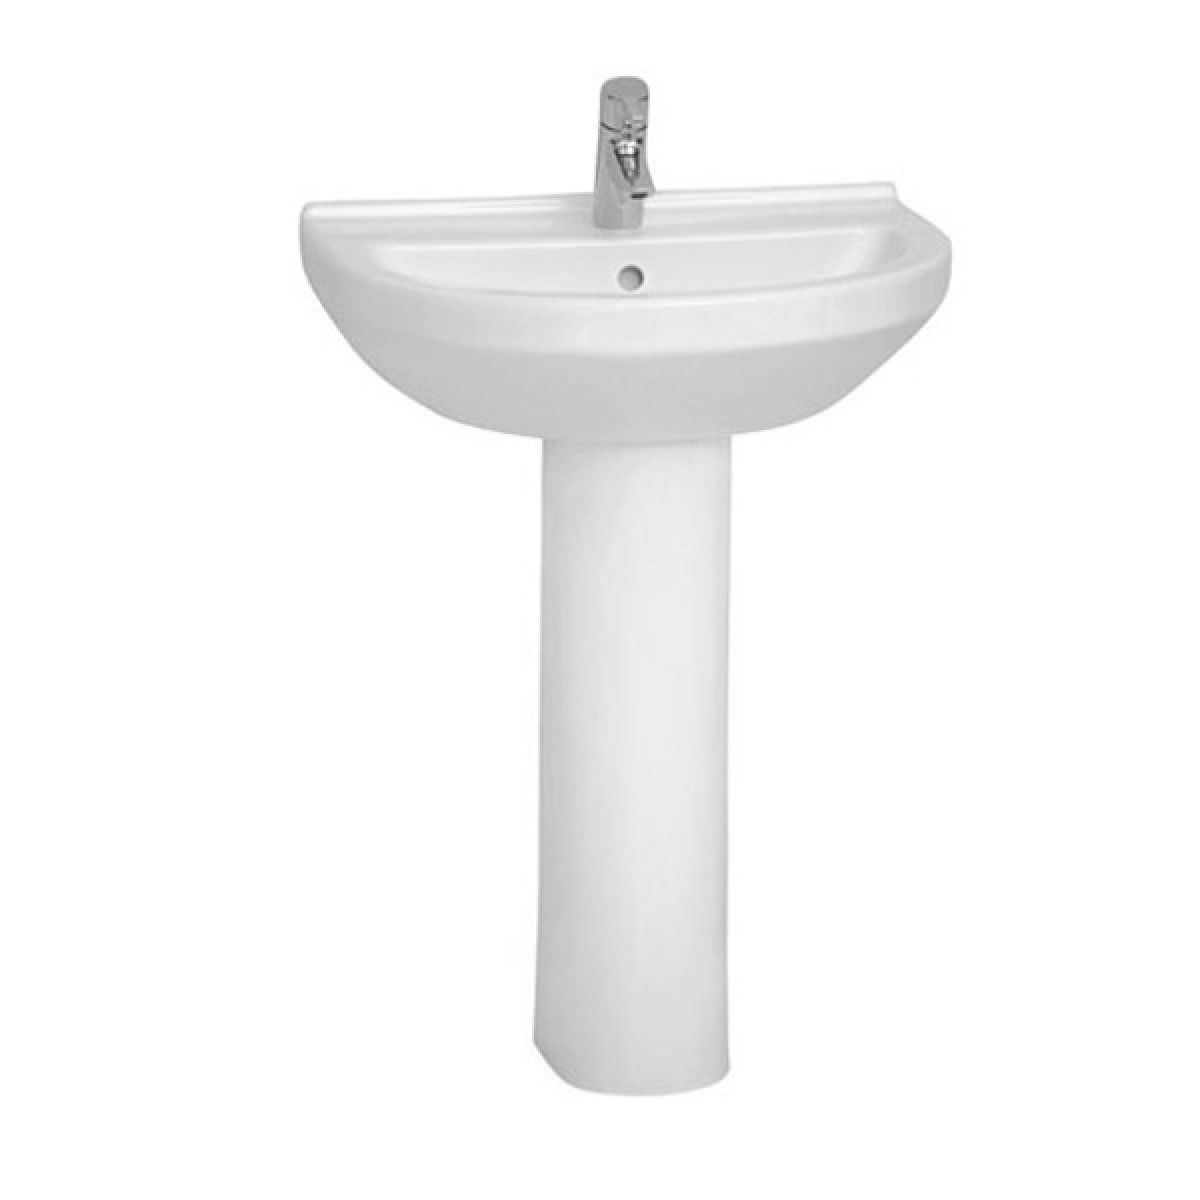 Vitra S50 1 Tap Hole Round Basin with Full Pedestal 550mm